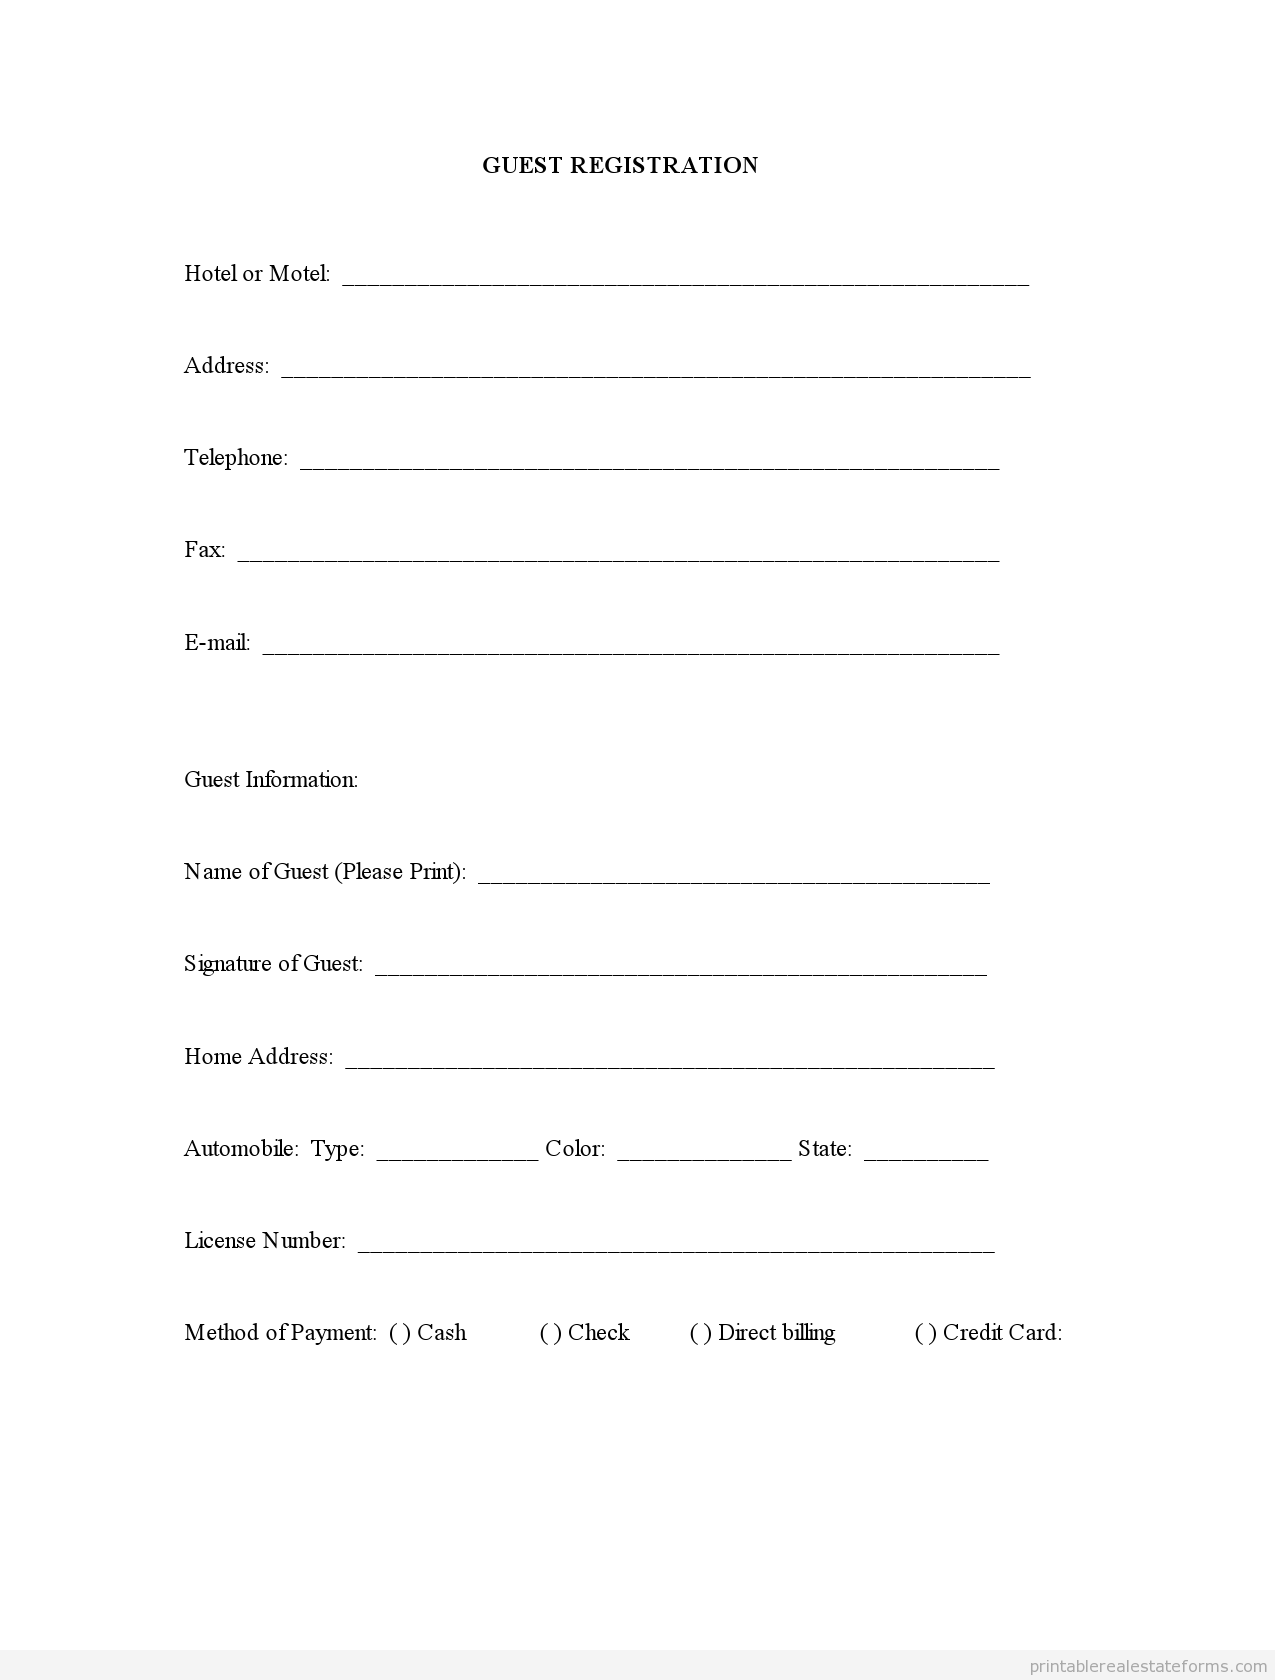 Sample printable guest registration form printable real estate sample printable guest registration form thecheapjerseys Gallery